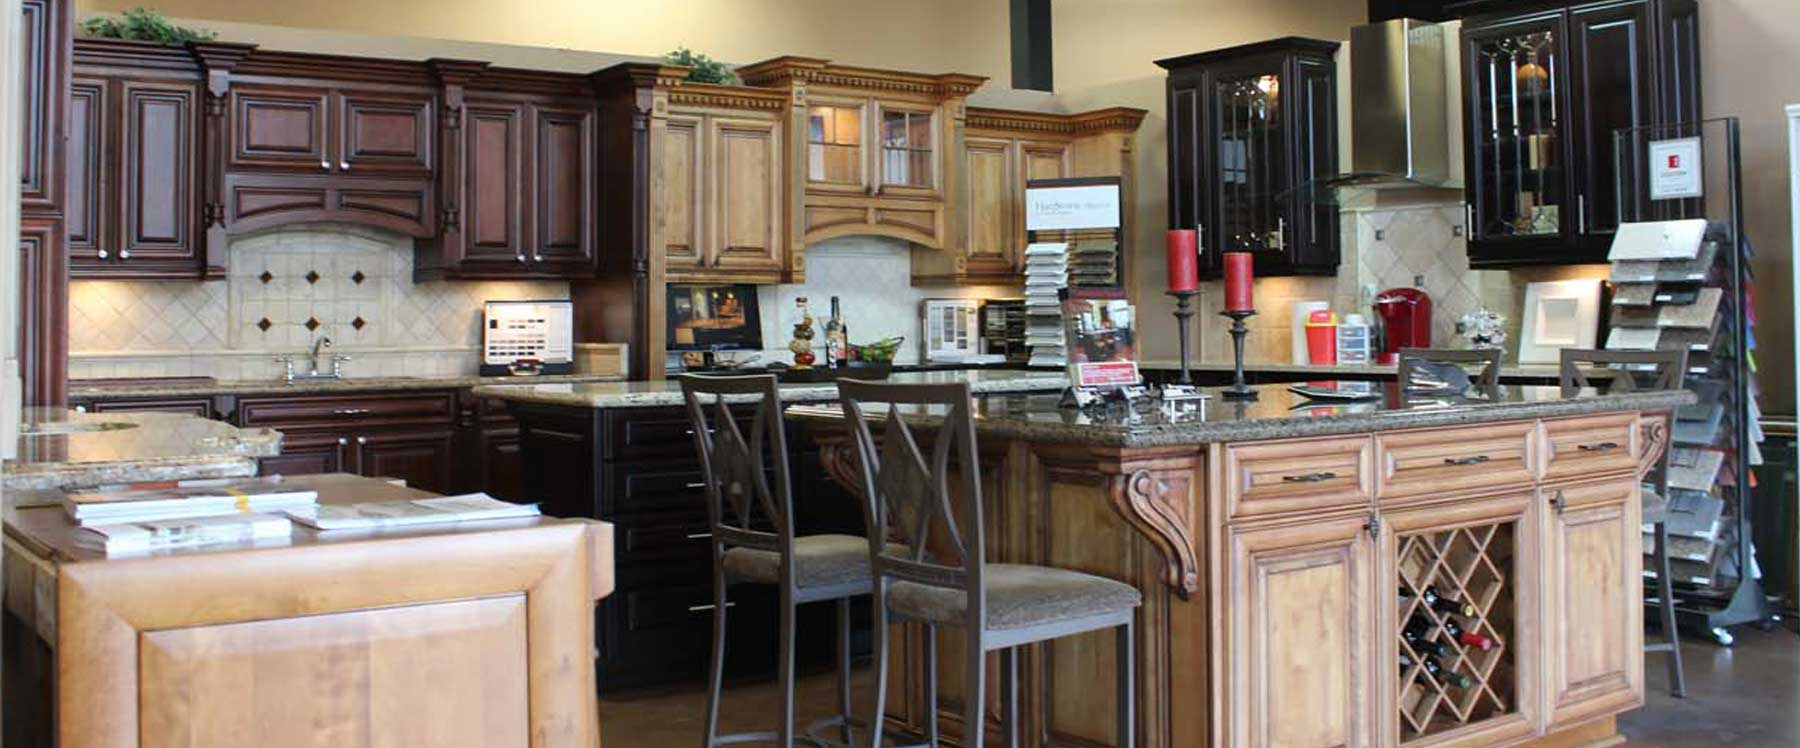 Quality cabinets for your kitchen. Get a price on kitchen cabinets